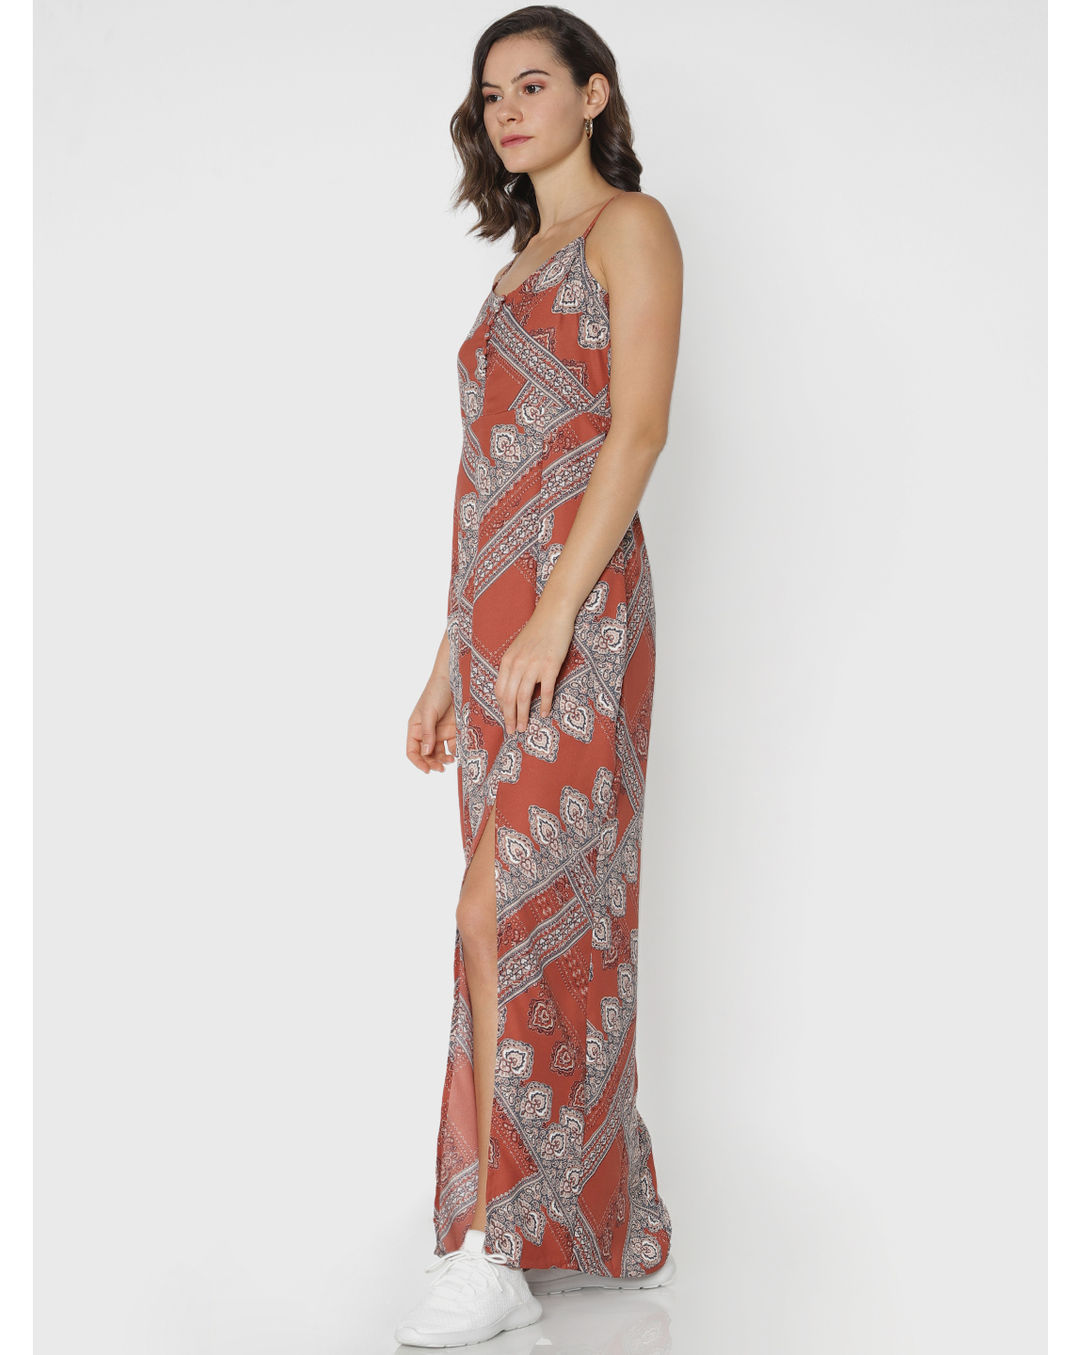 966f28fd0bb4a Buy ONLY Brown All Over Print Maxi Dress Online | ONLY